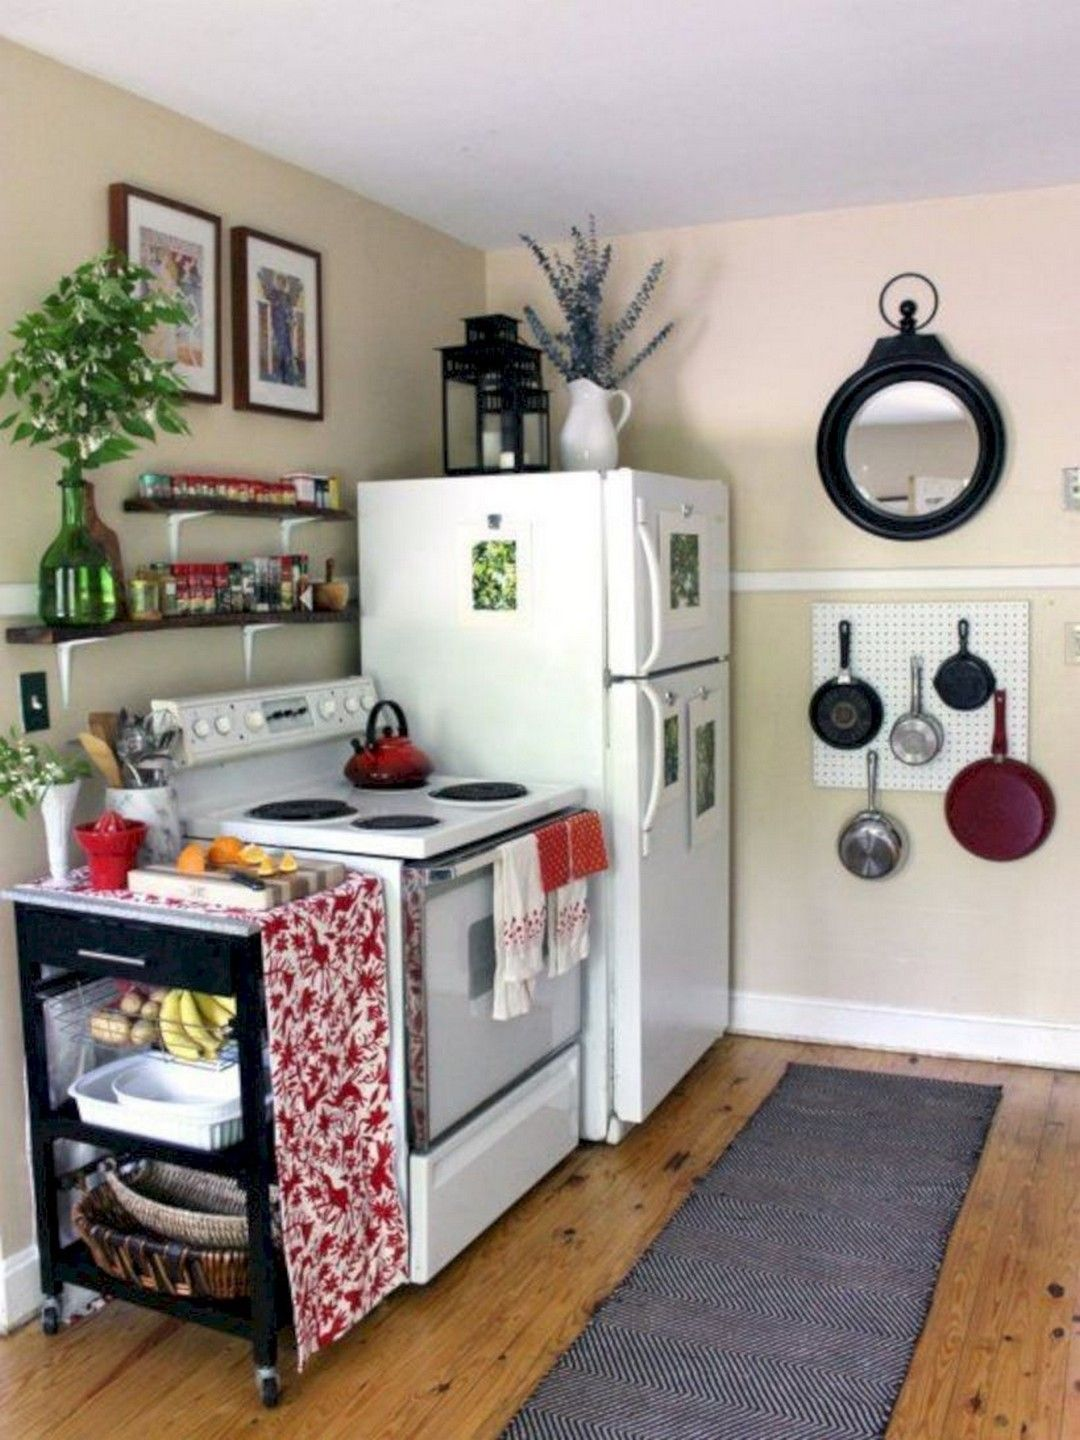 10 Clever Ways To Improve Your Apartment On A Budget Kitchen Decor Apartment Small Apartment Kitchen Decor Small Apartment Kitchen